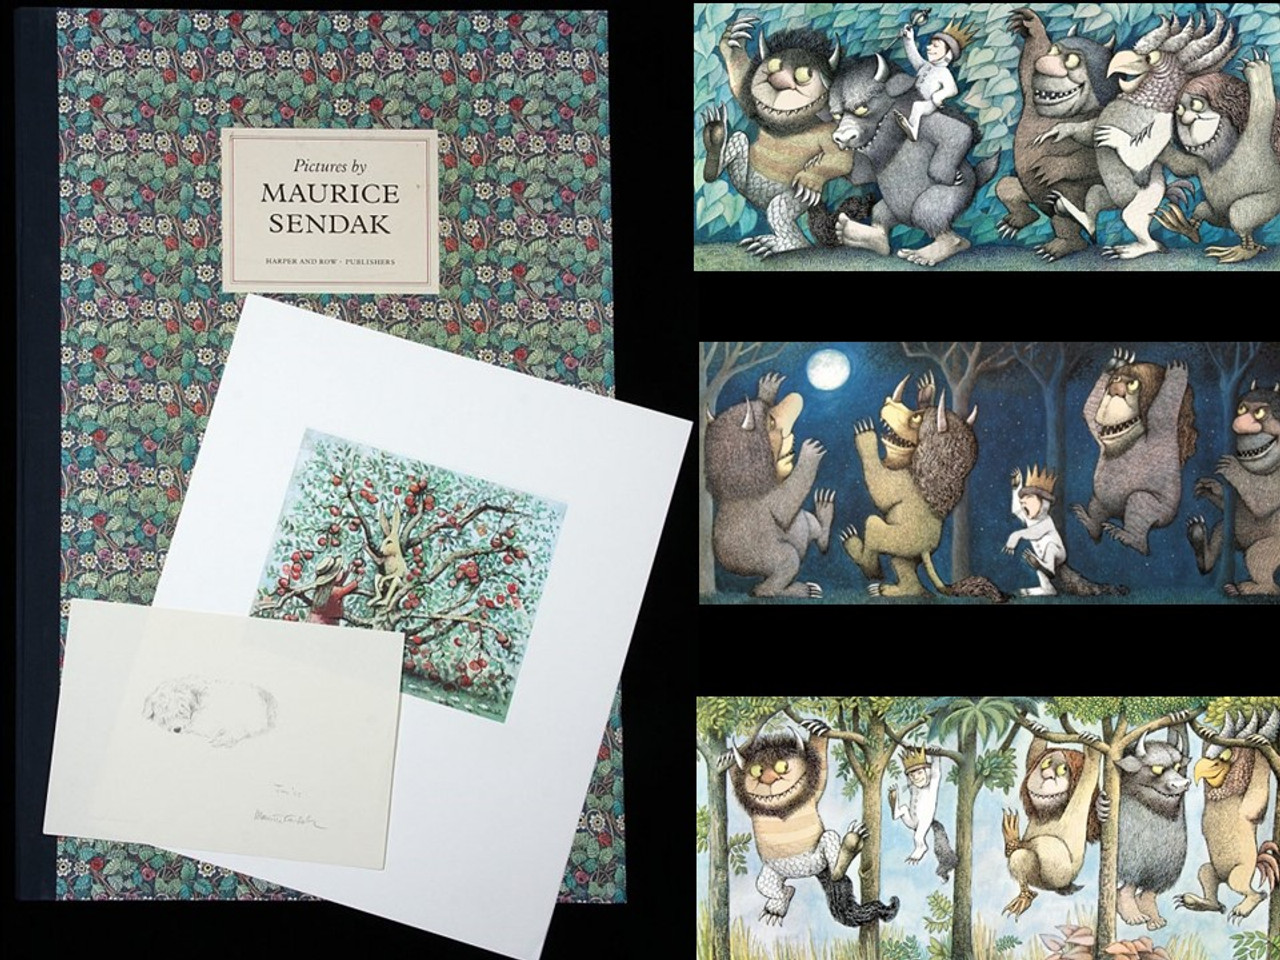 Pictures by Maurice Sendak, Signed Limited Edition Portfolio, 319 of 500